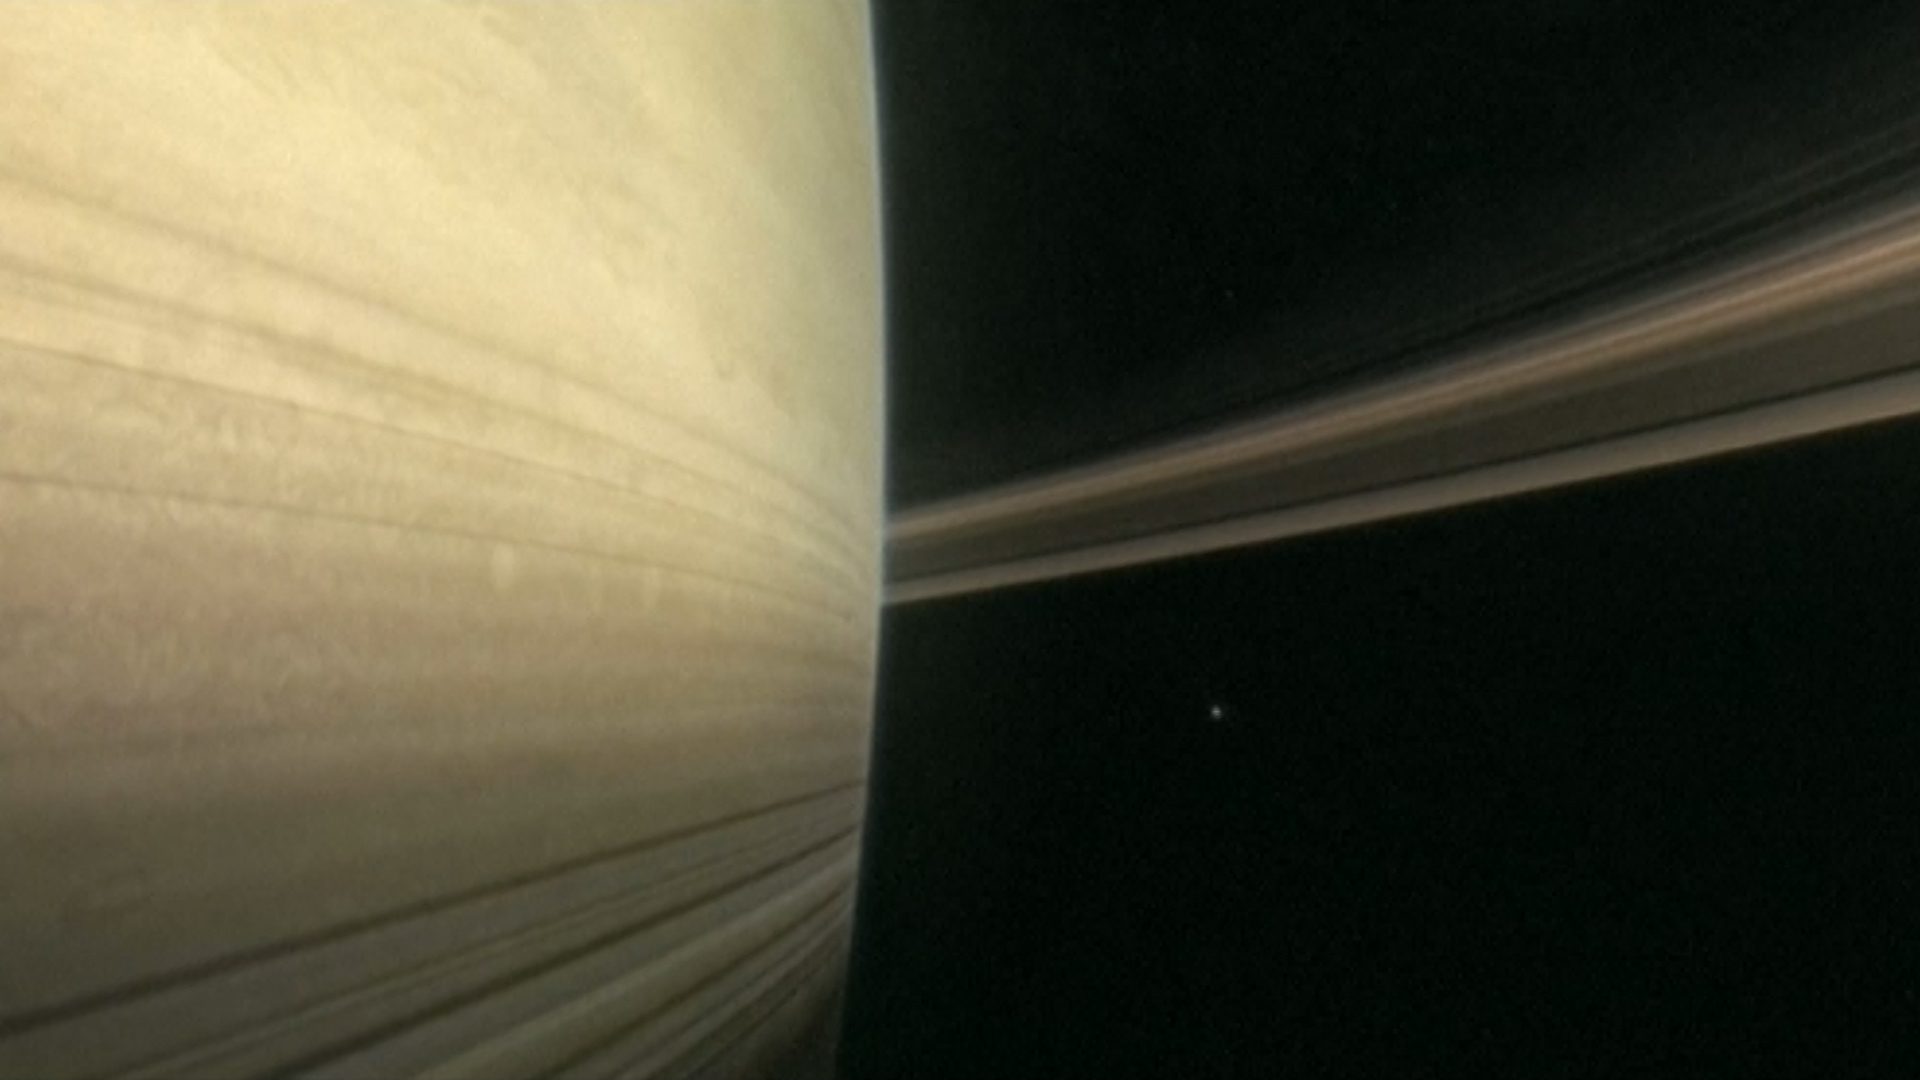 Cassini sends first images from dive between Saturn and rings